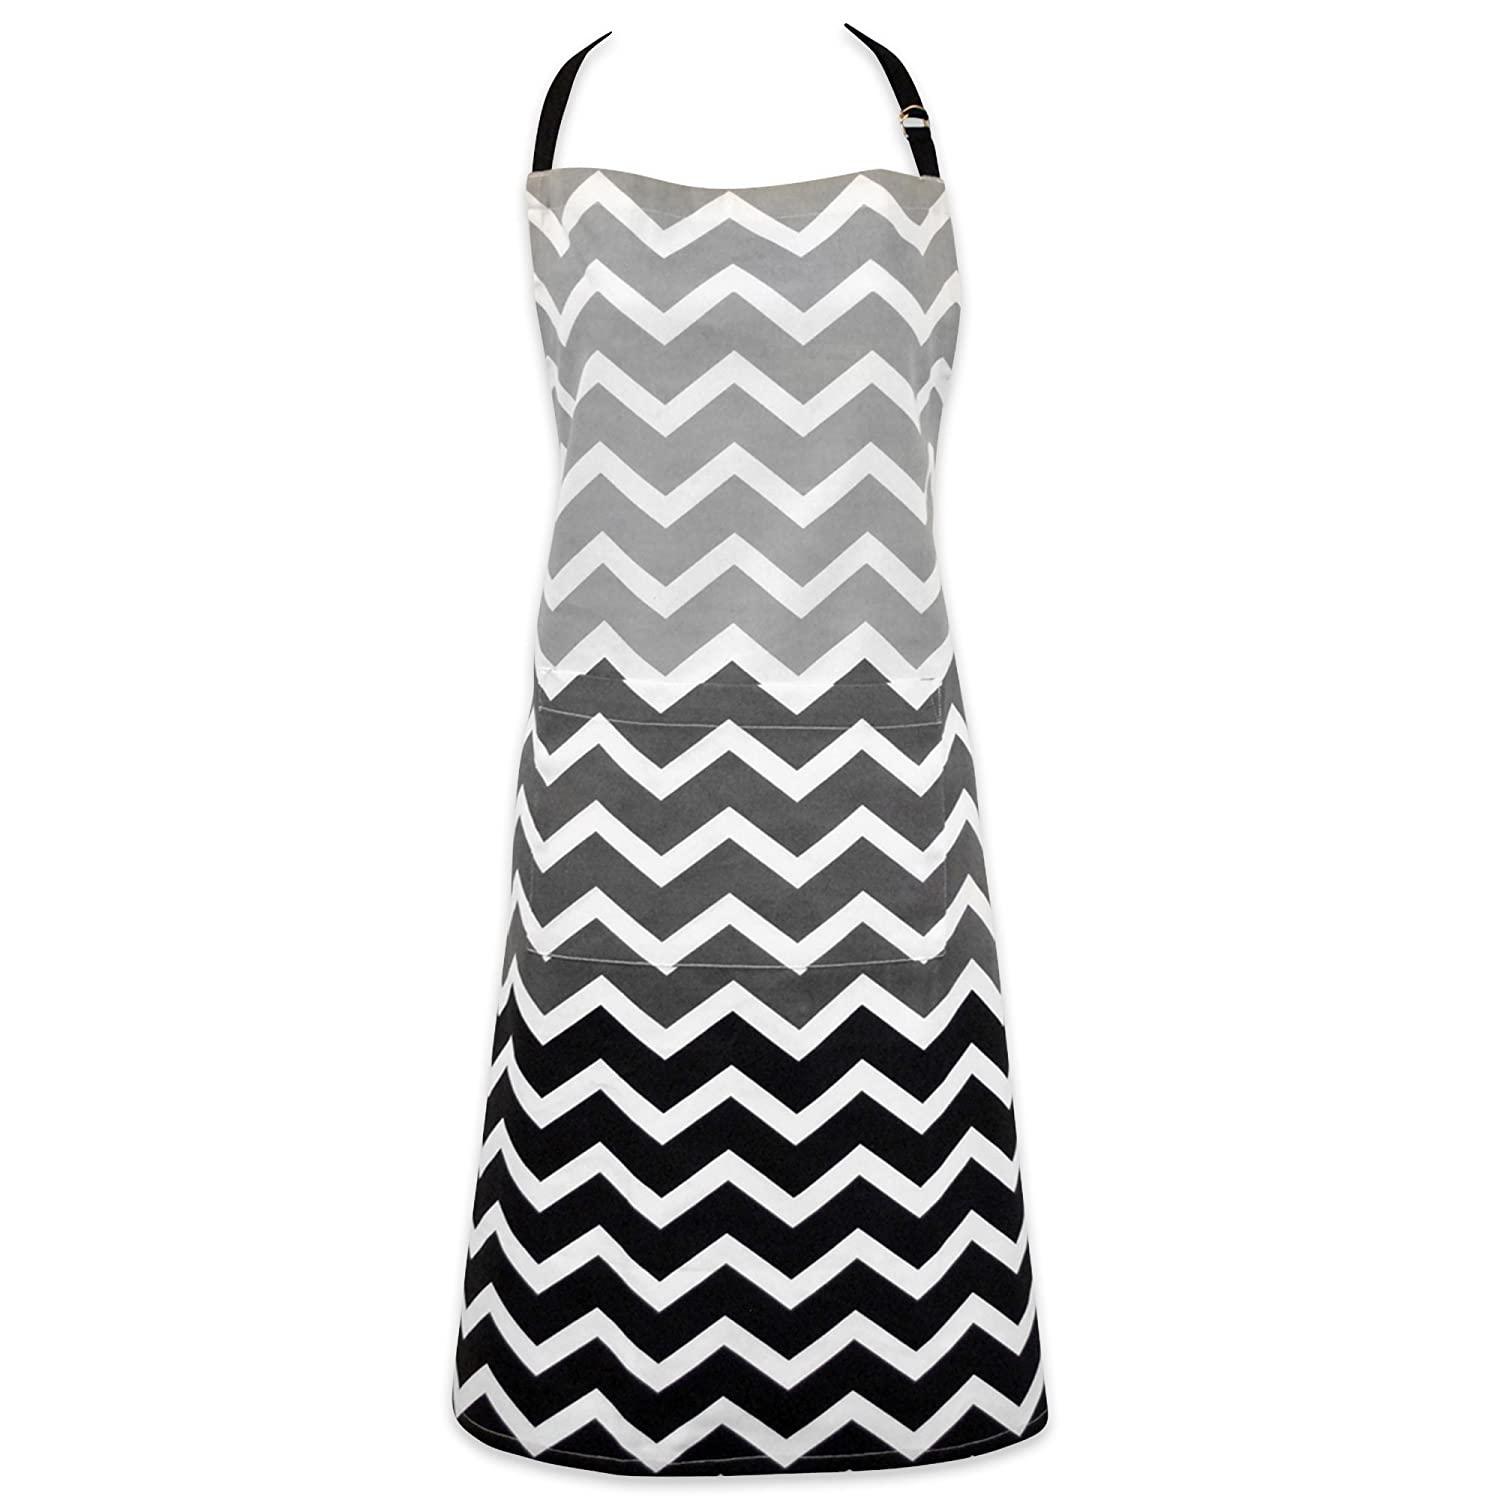 DII 100% Cotton, Trendy Chevron Ombre Unisex Chef Kitchen Apron, Adjustable Neck & Waist Ties, Machine Washable, Front Pocket, Perfect for Cooking, Baking, BBQ-Black